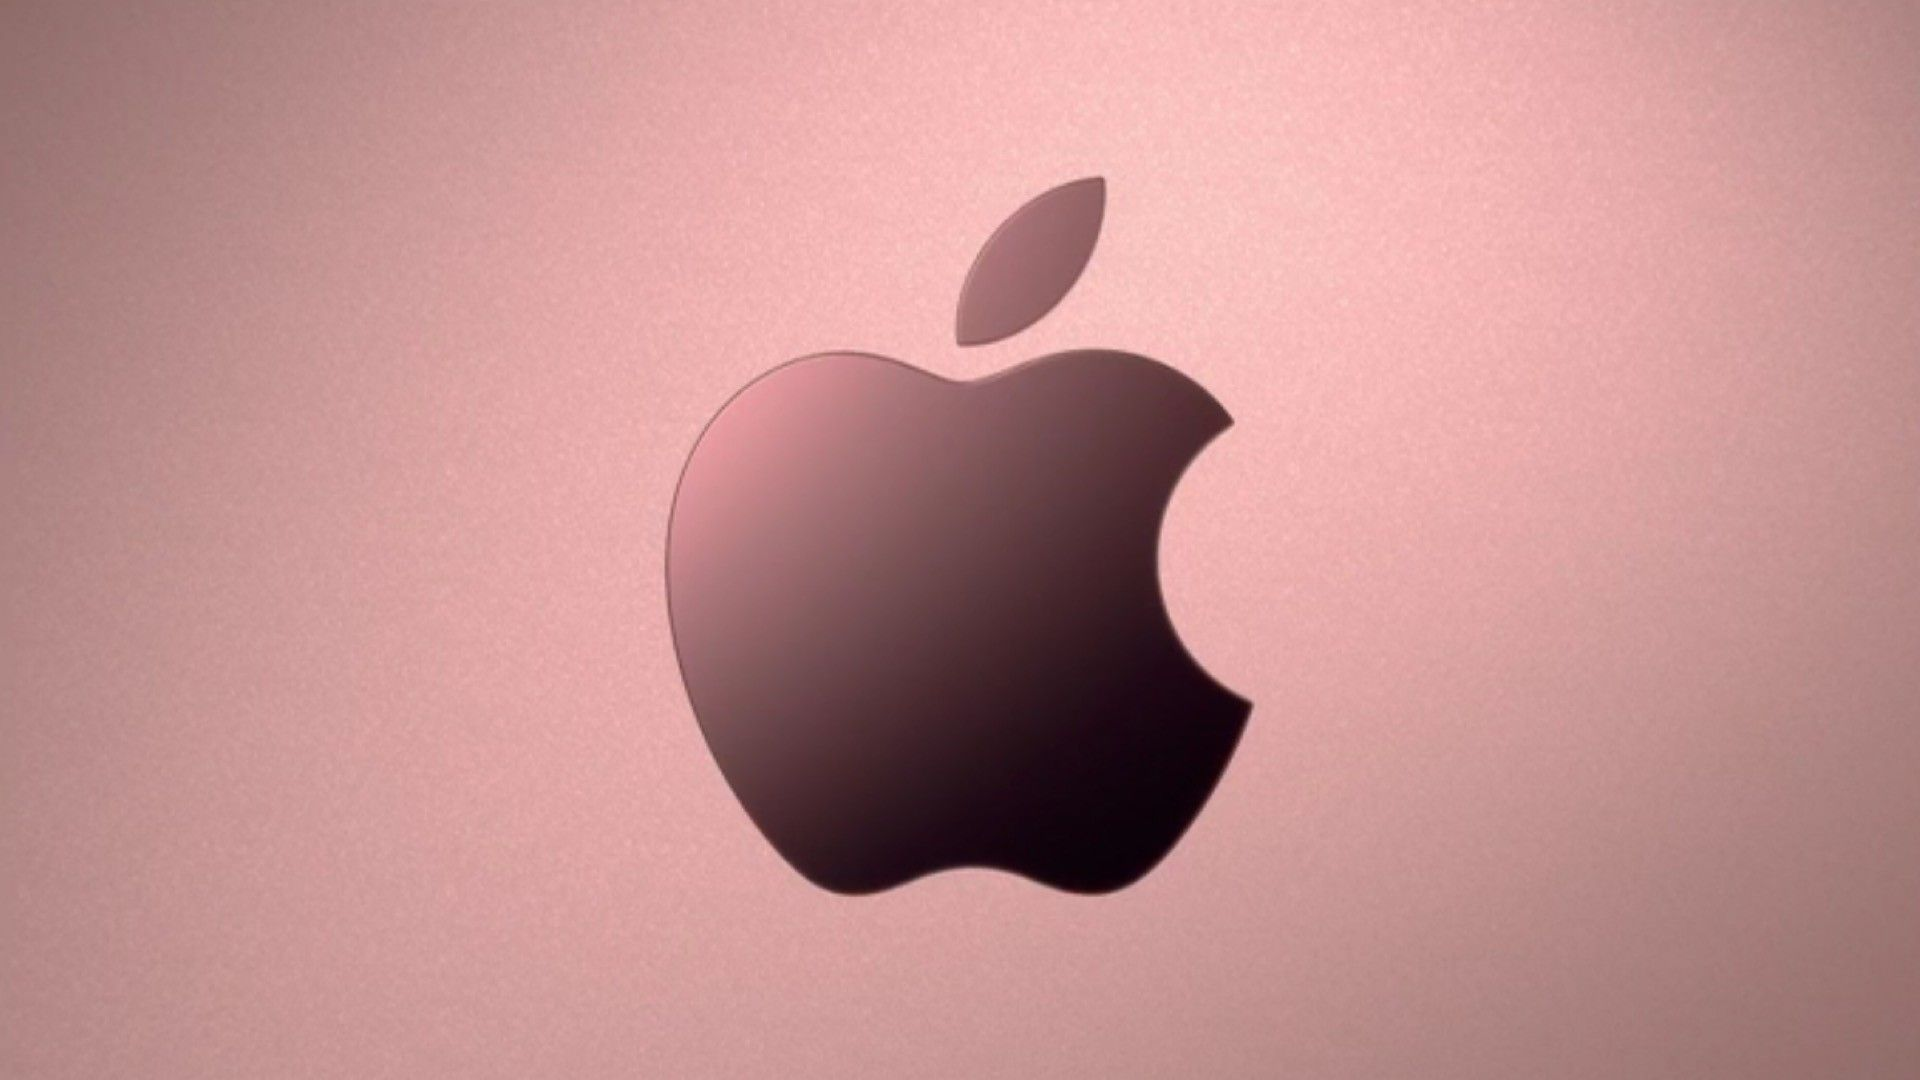 Golden Apple Logo Wallpapers Top Free Golden Apple Logo